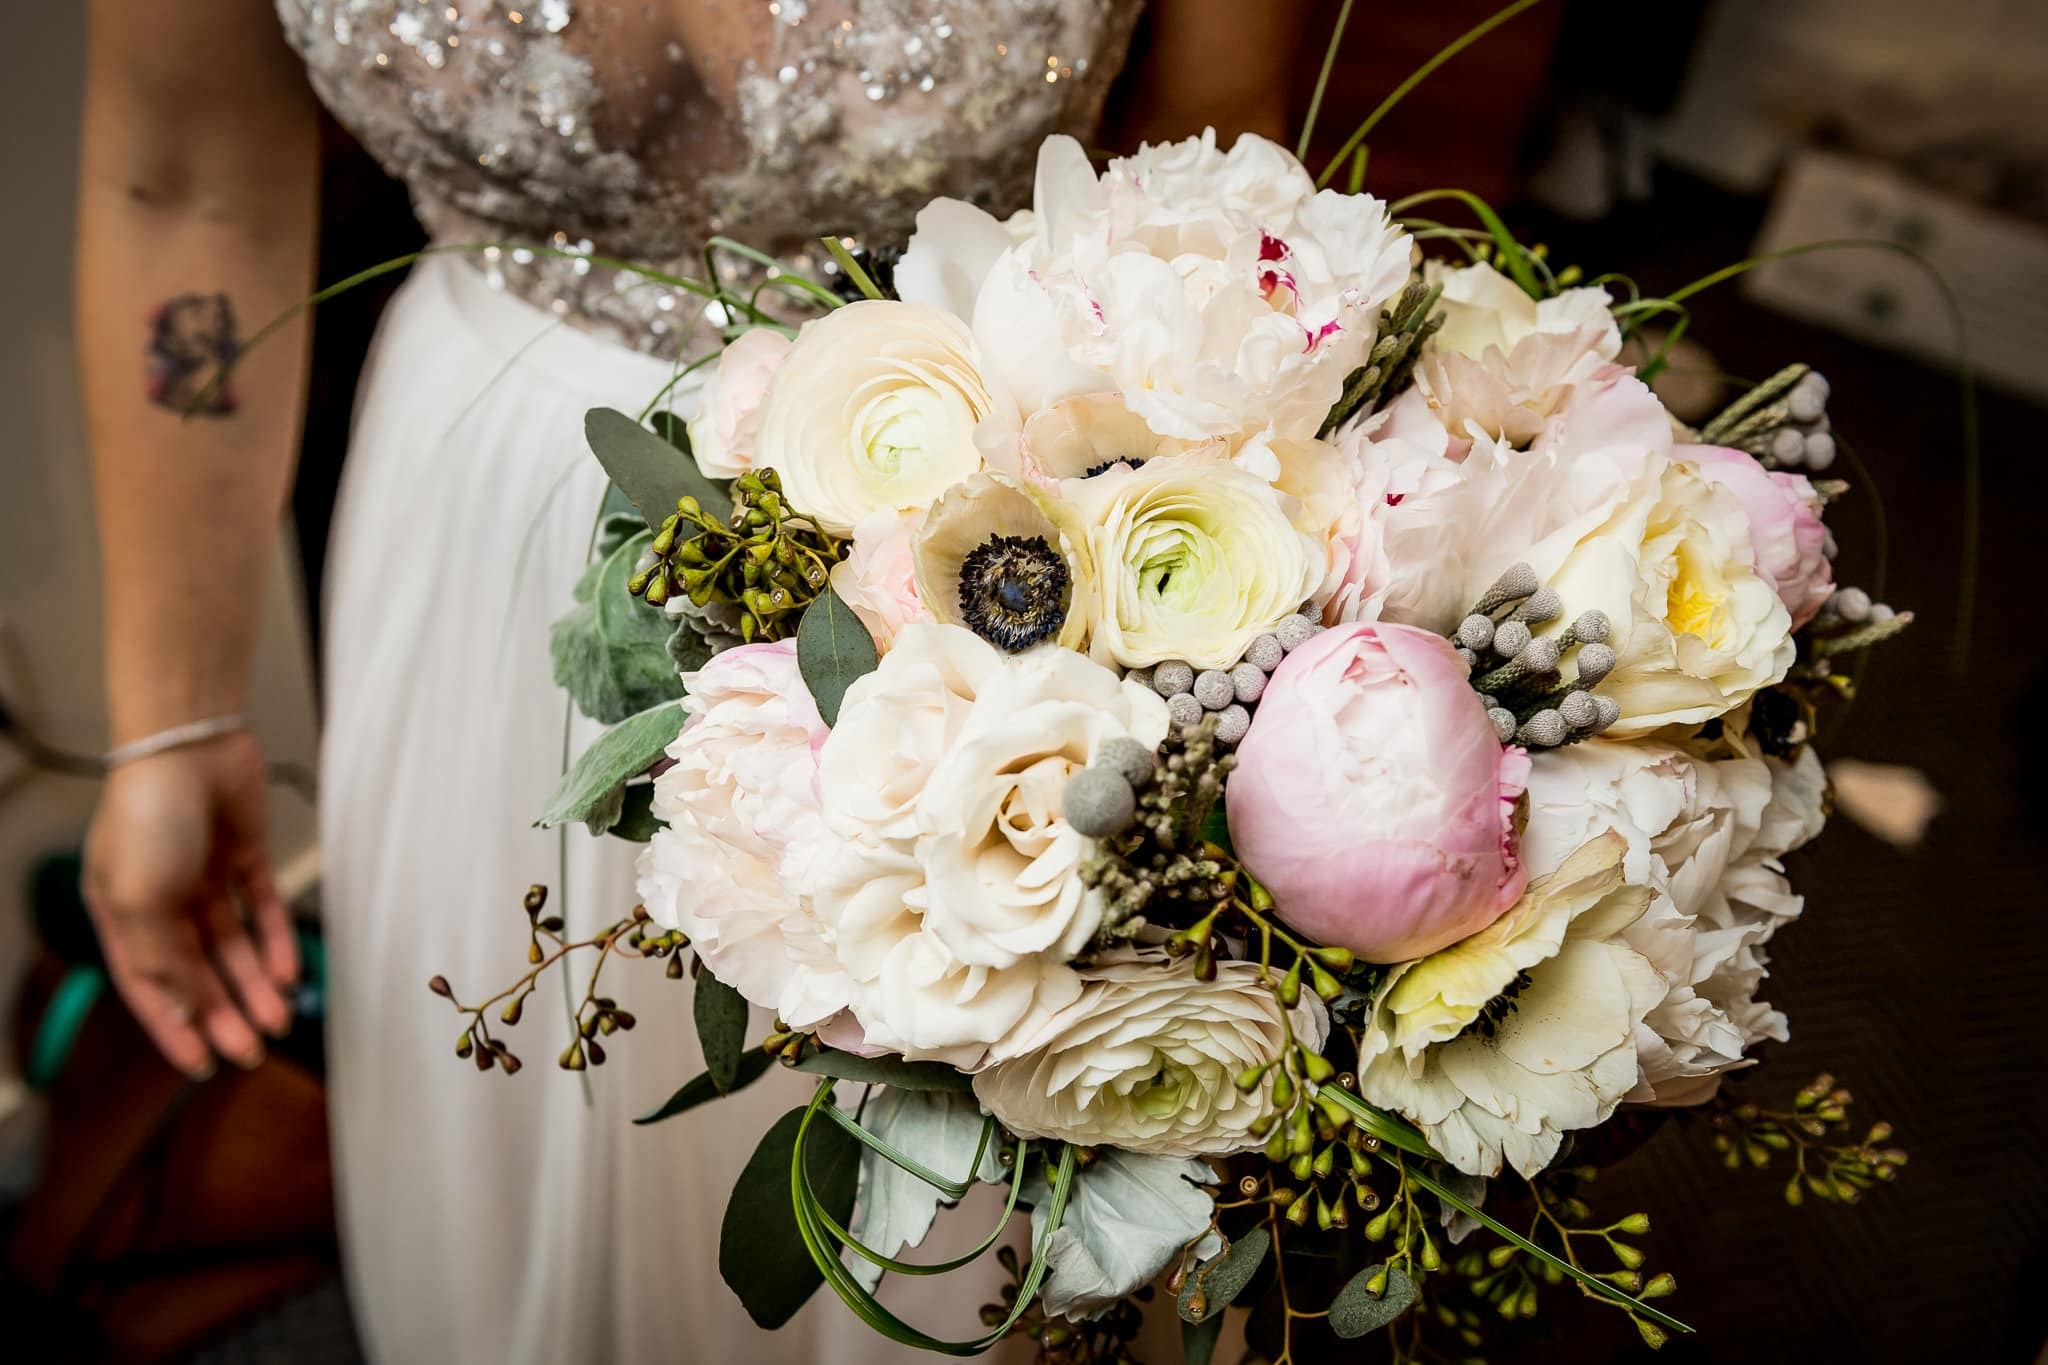 Brides bouquet of flowers by Artemisia Studios